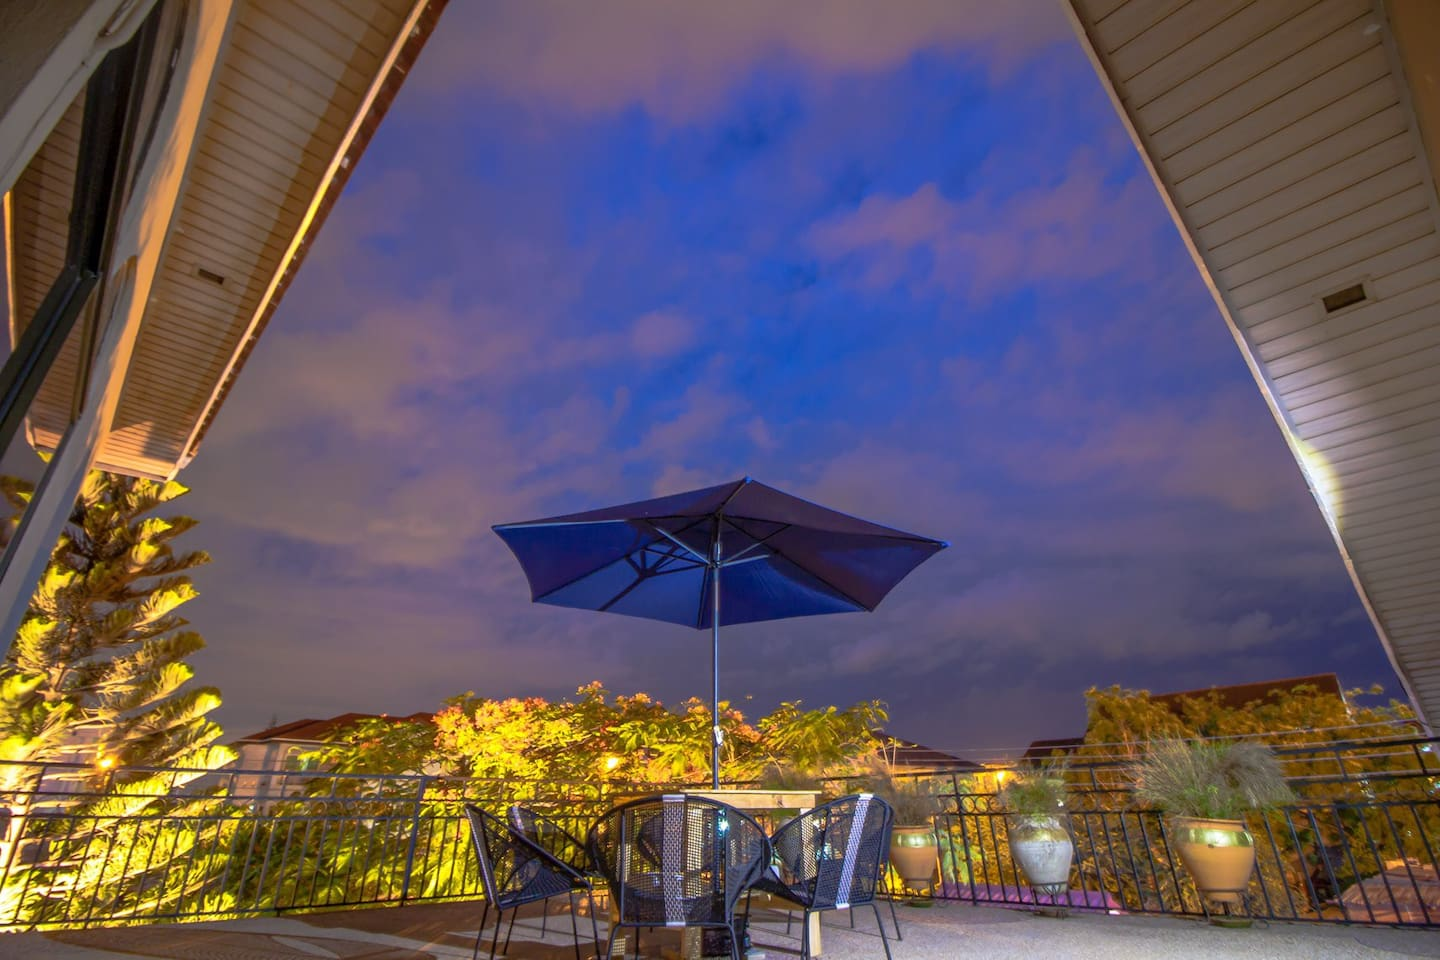 Drinks, stars above, food, music - enjoy breezy evenings with friends or family on our terrace